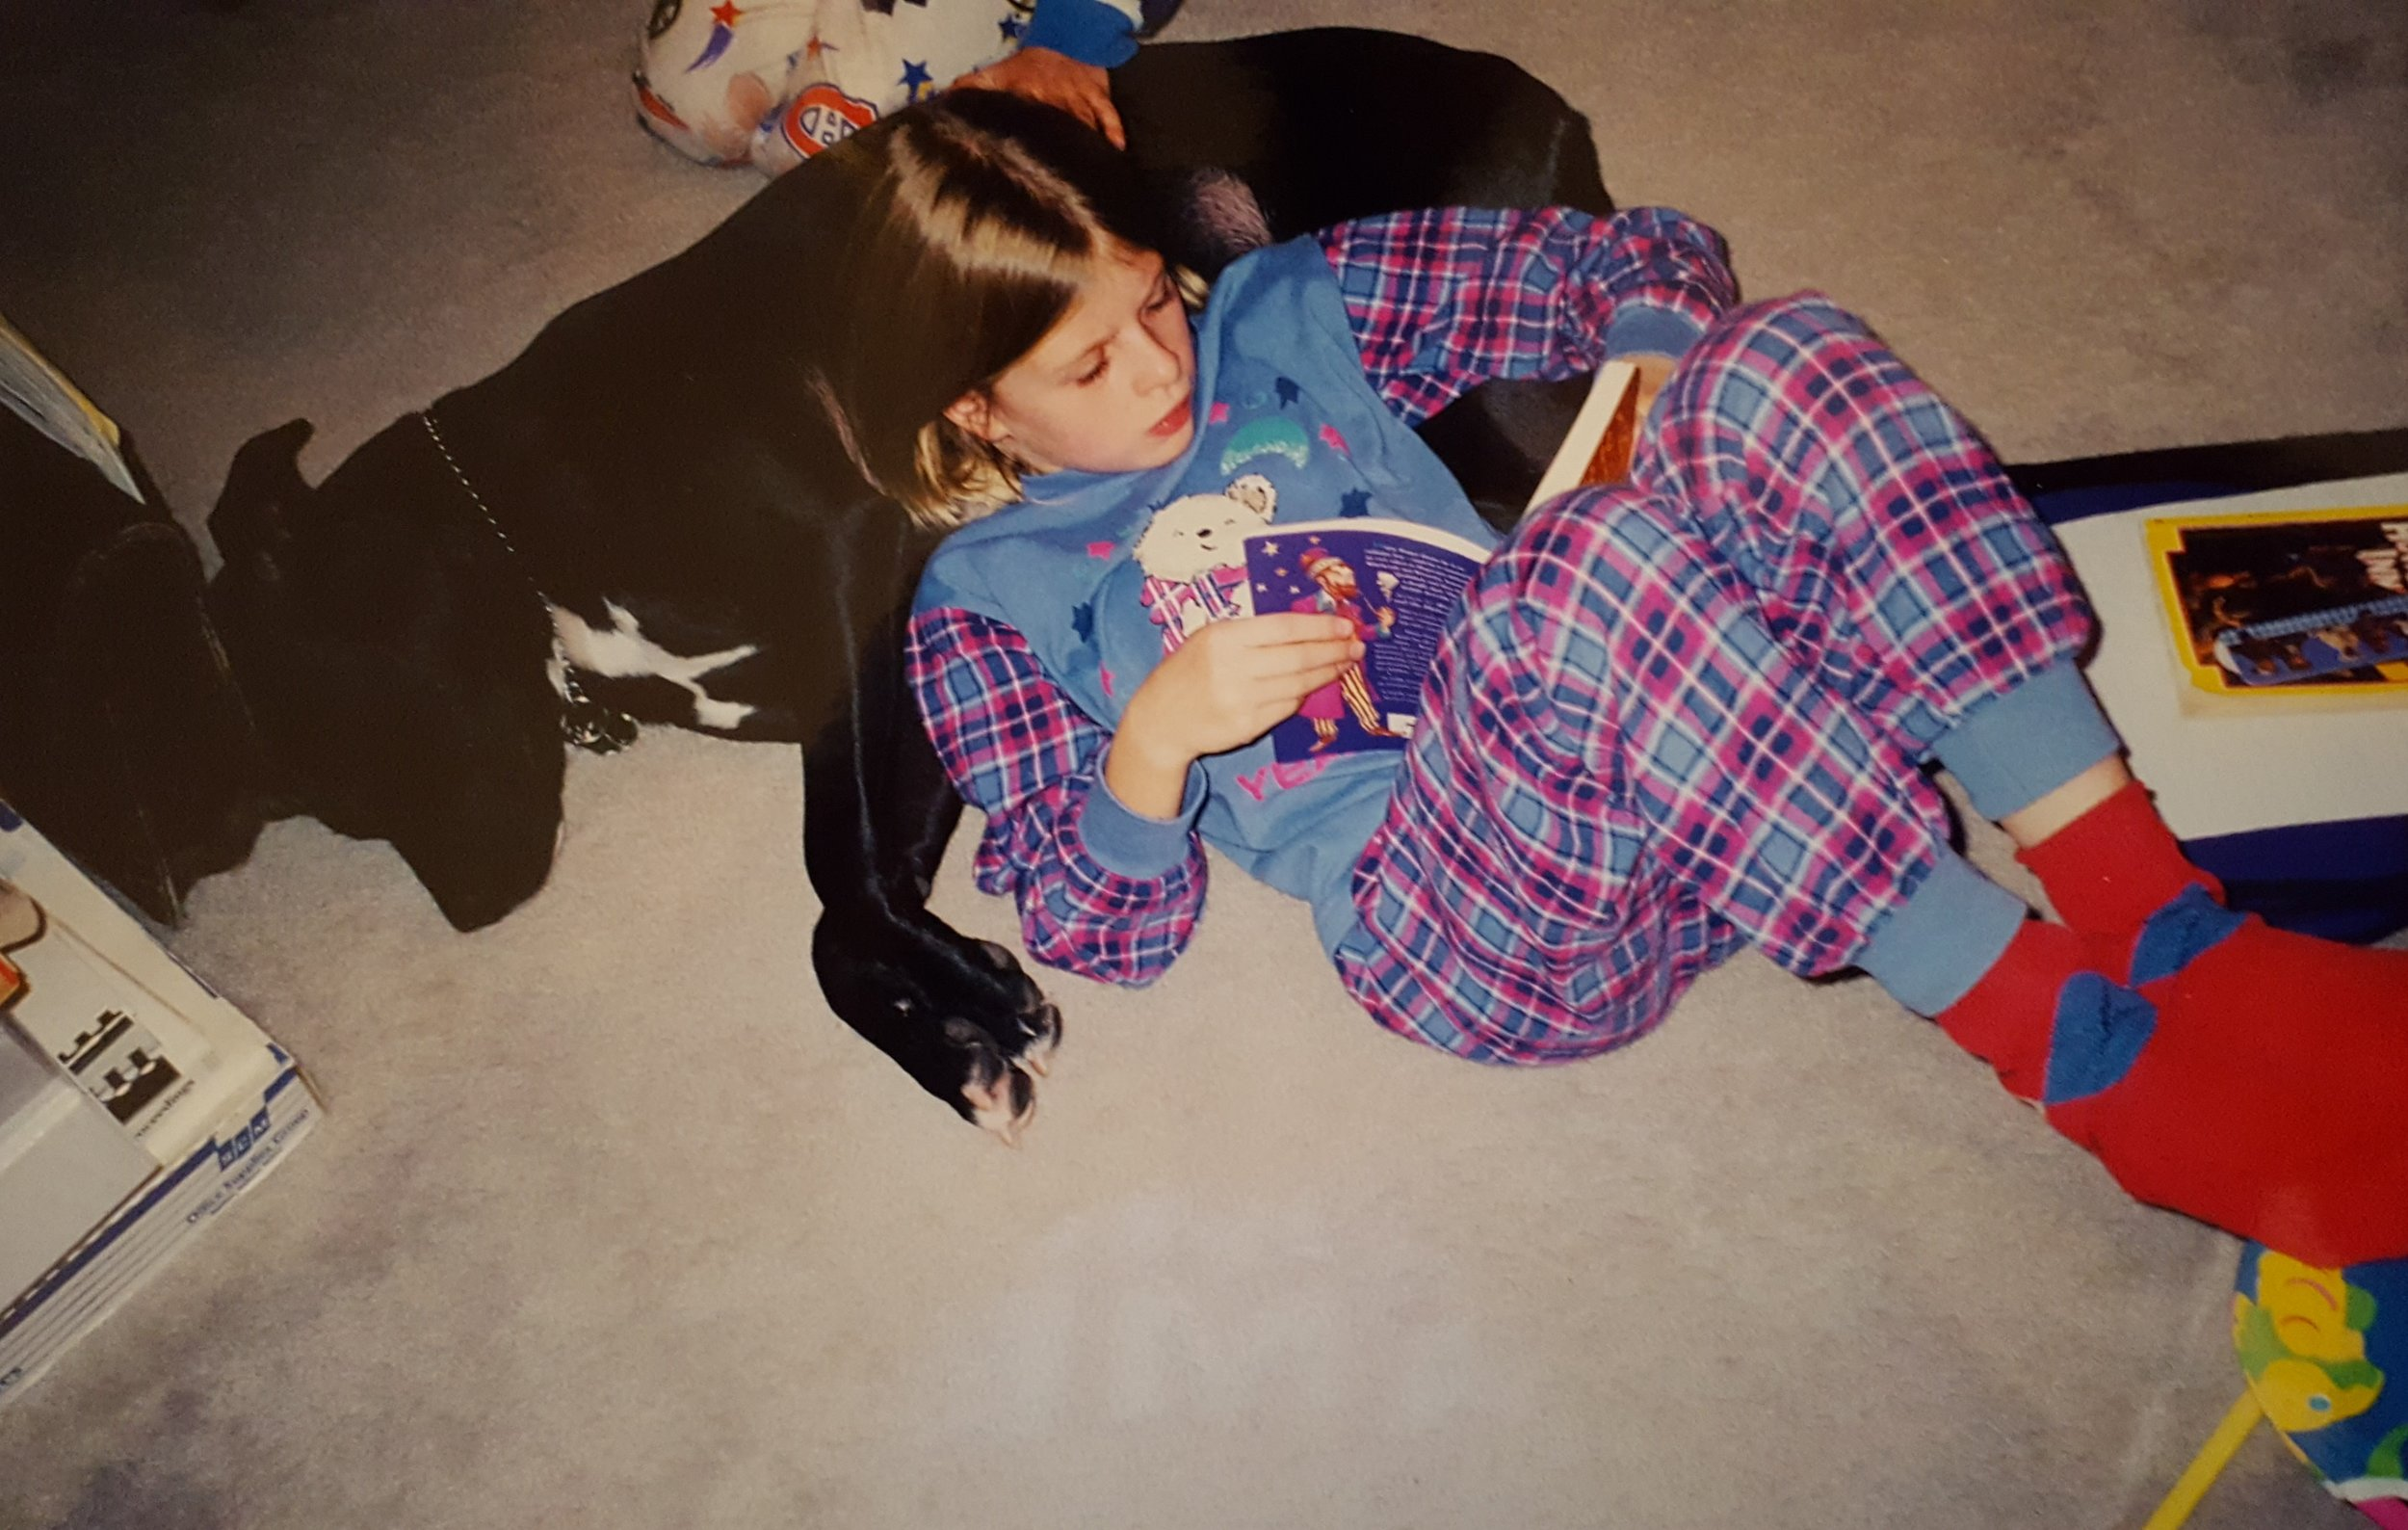 Circa 1999. Yes, I'm reading Harry Potter. Yes, my dog is my pillow. And yes, I know my socks don't match my pyjamas.